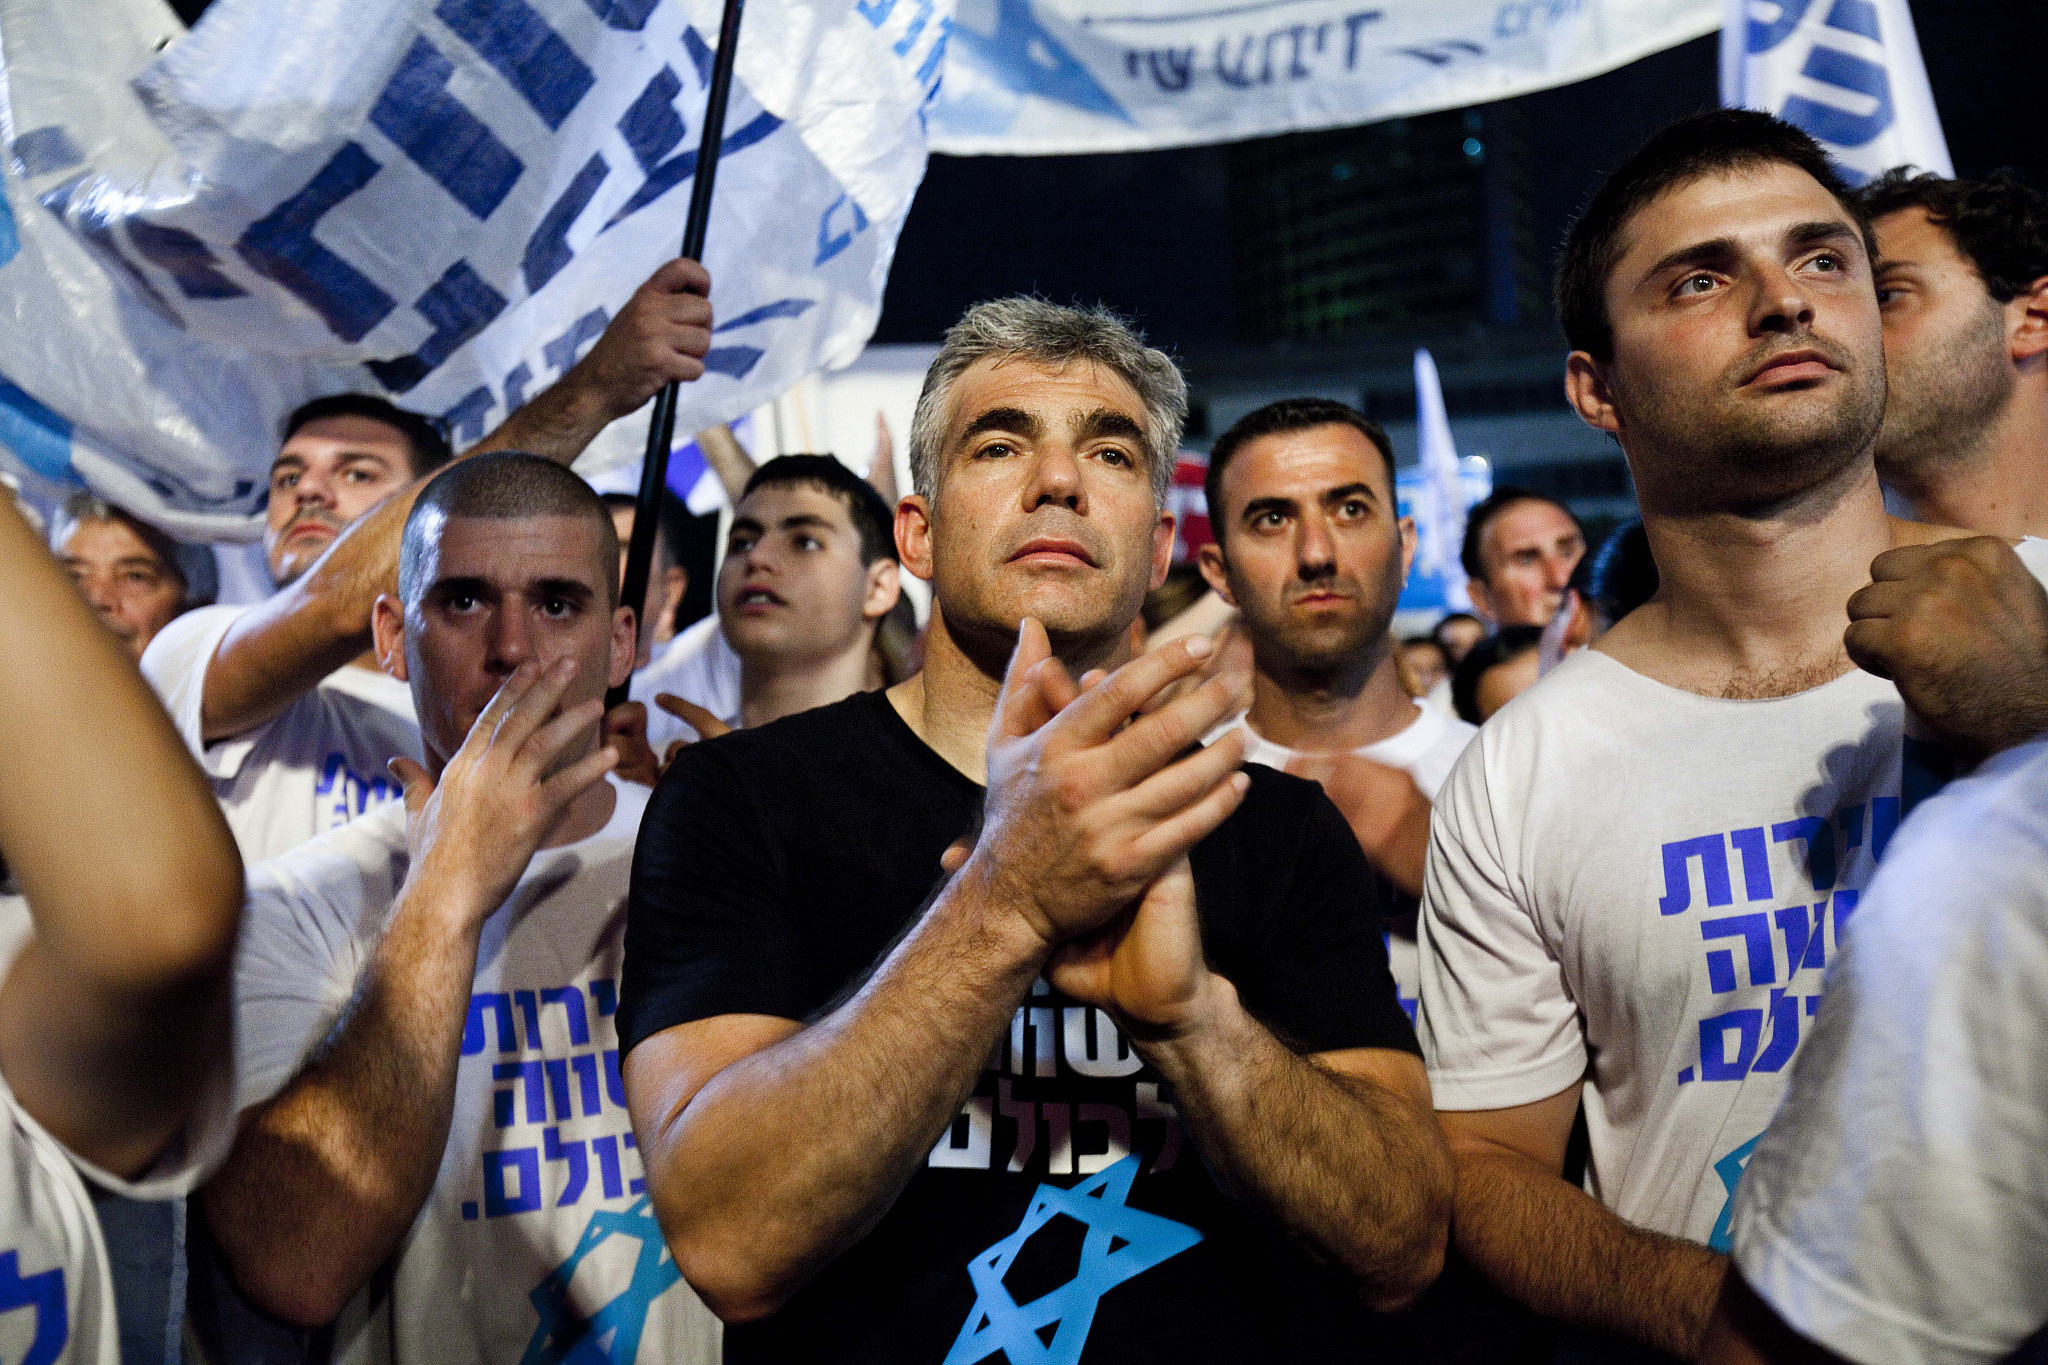 Yair Lapid and some 25,000 people hold a mass rally in Tel Aviv urging the government to enact universal draft legislation, July 7, 2012. (Tali Mayer/Flash90)